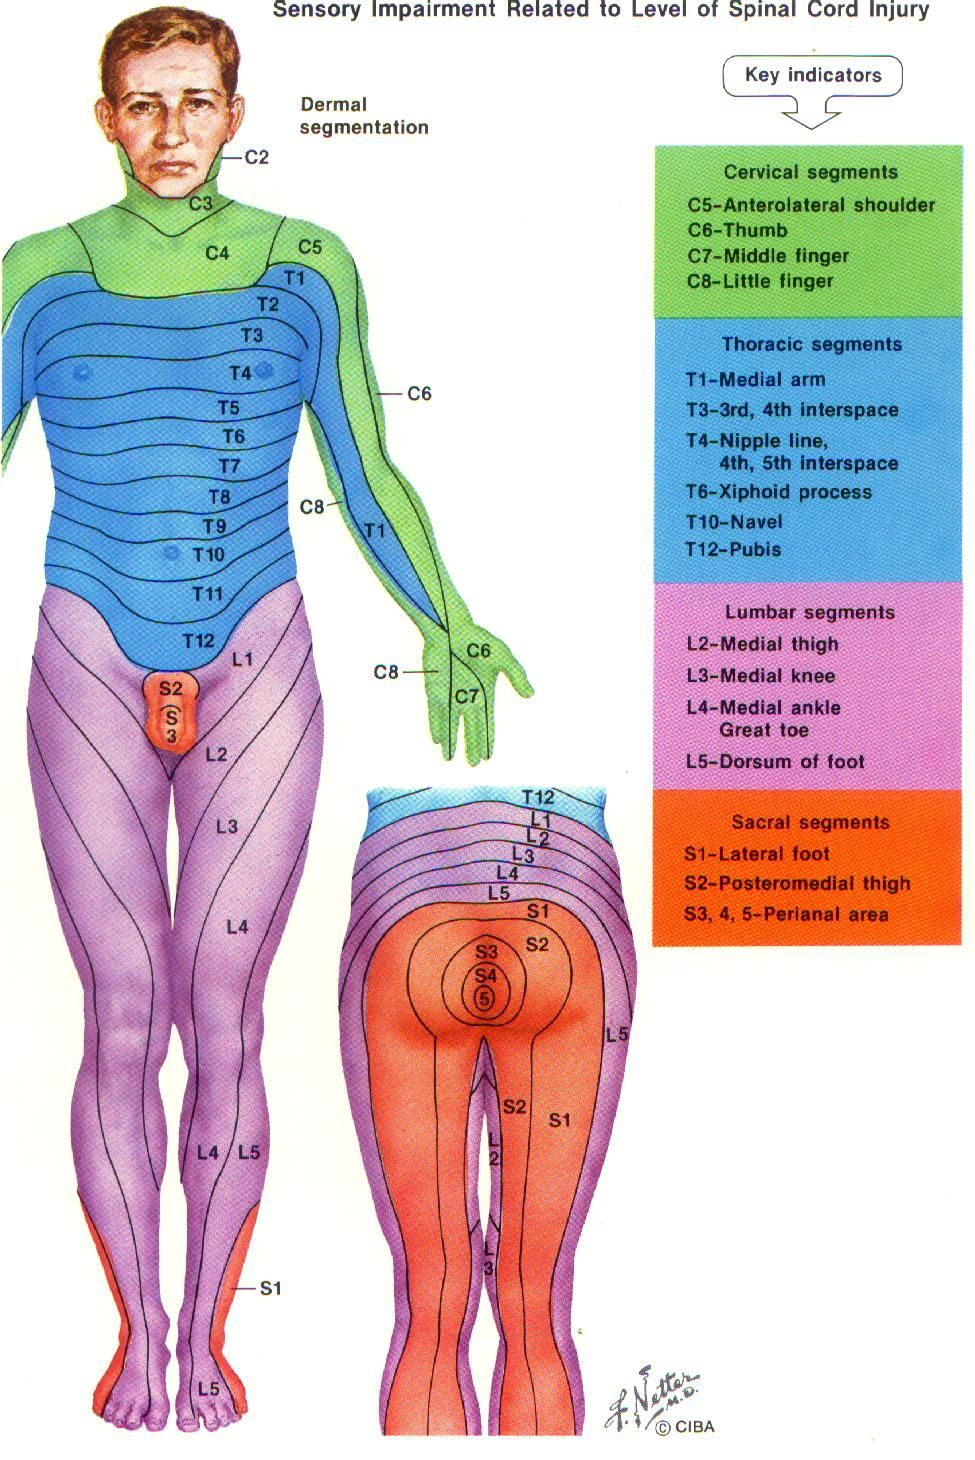 dermatomes map | Spinal Cord | Physical therapy, Spinal ... on